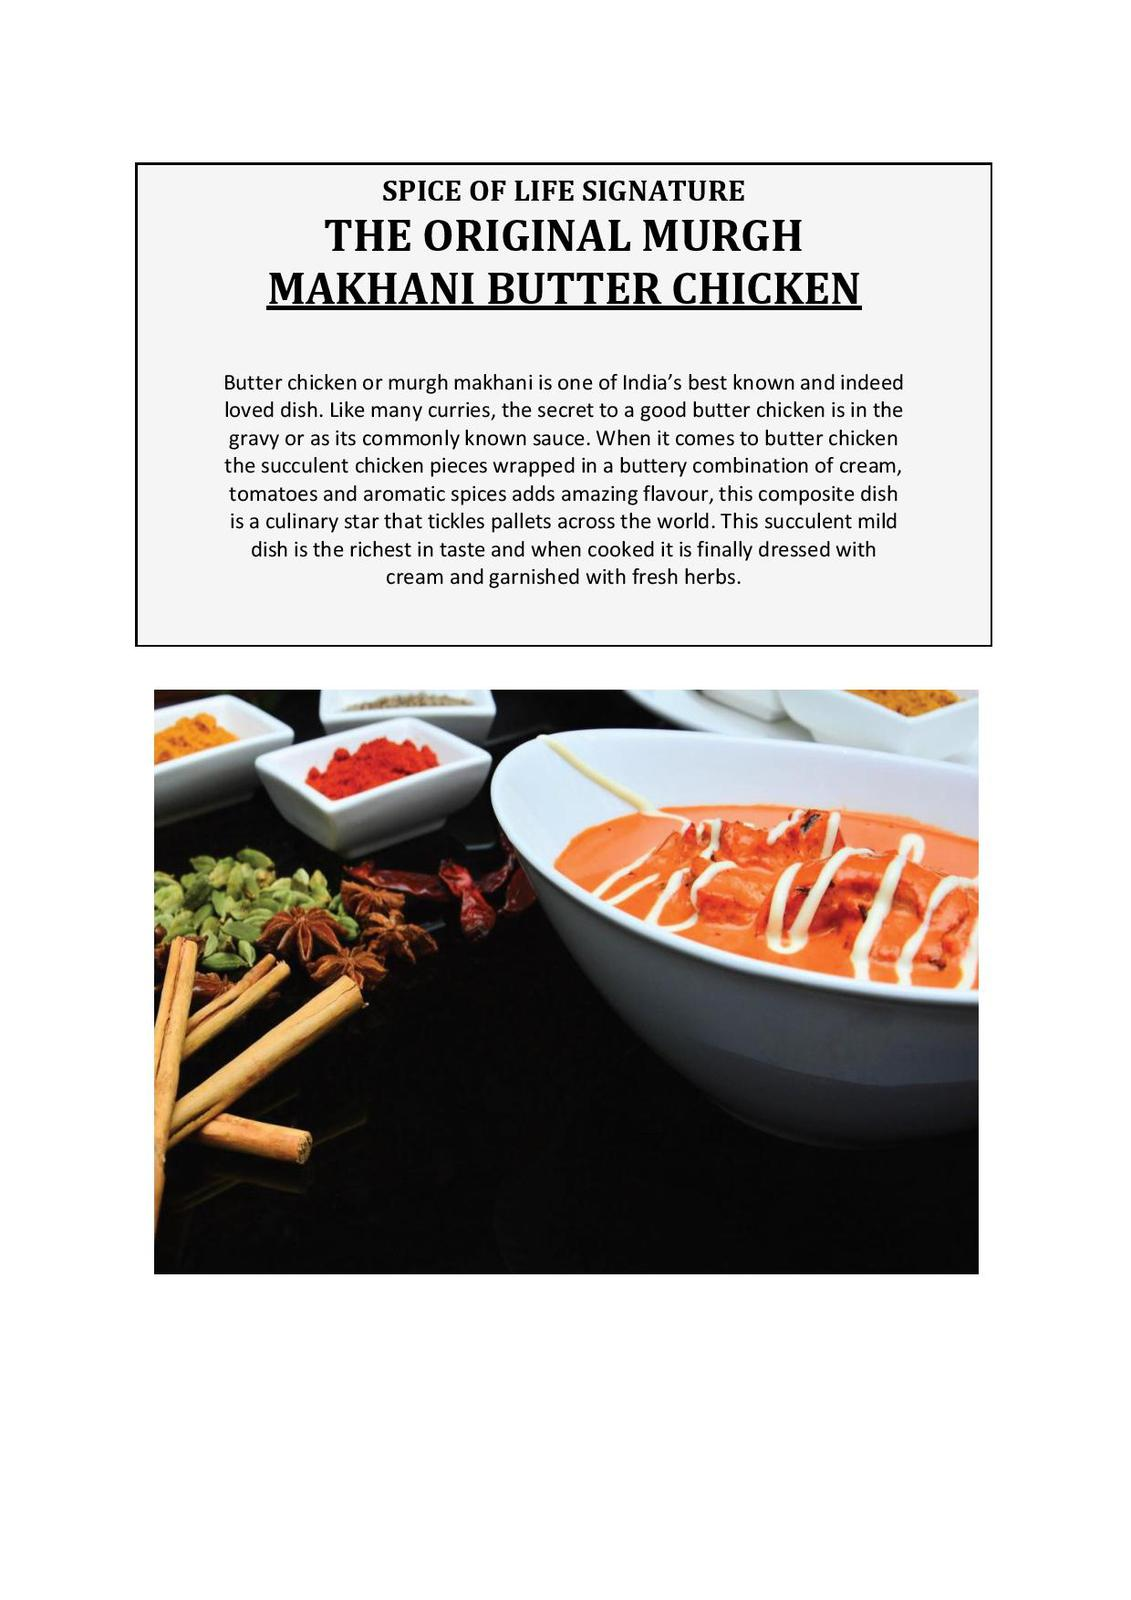 The Original Murgh Makhani Butter Chicken